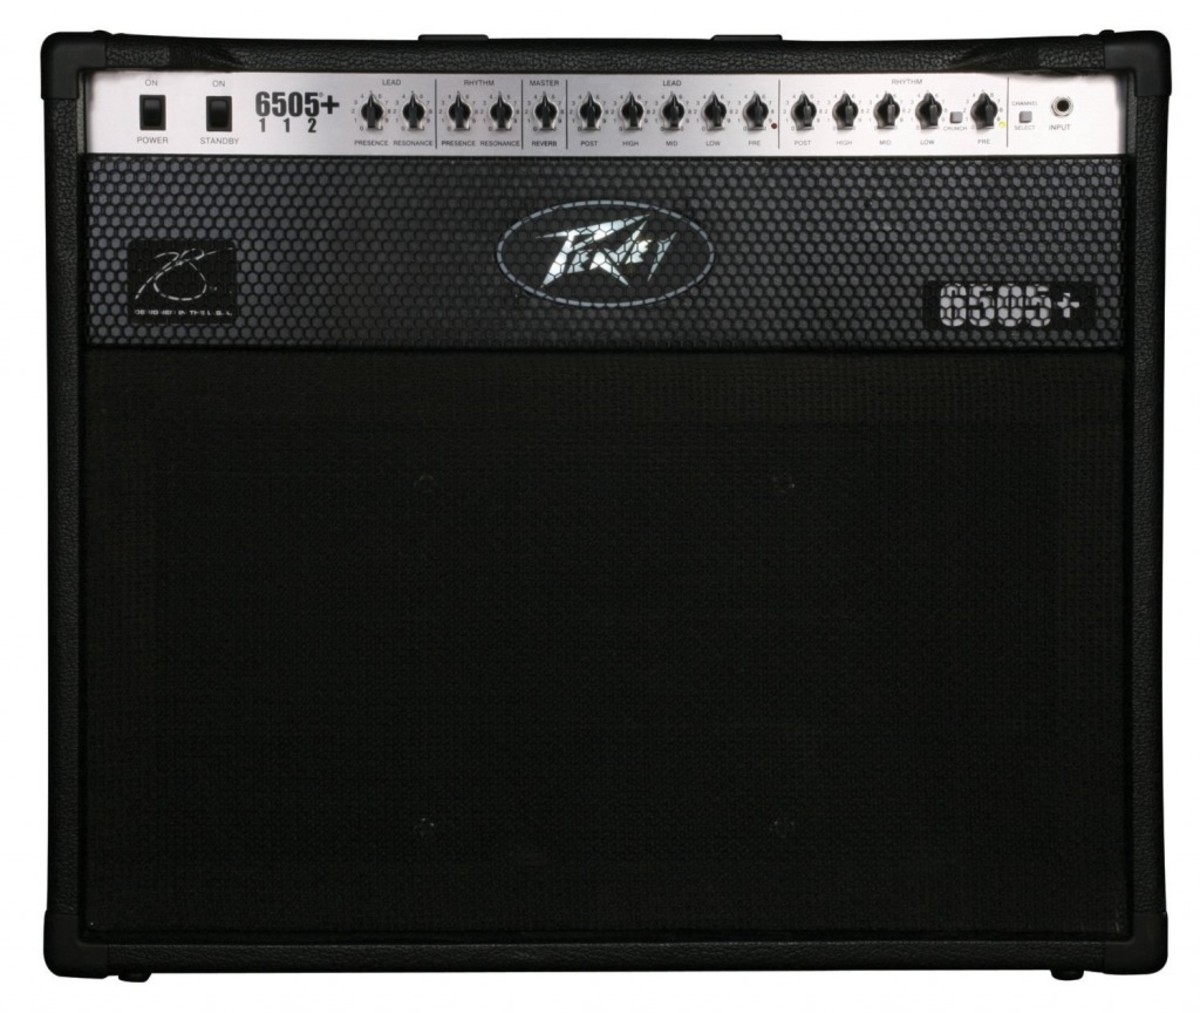 Best Combo Guitar Amps For Metal Spinditty Low Amplifier Is Intended To Be Used In Conjunction With An Electric